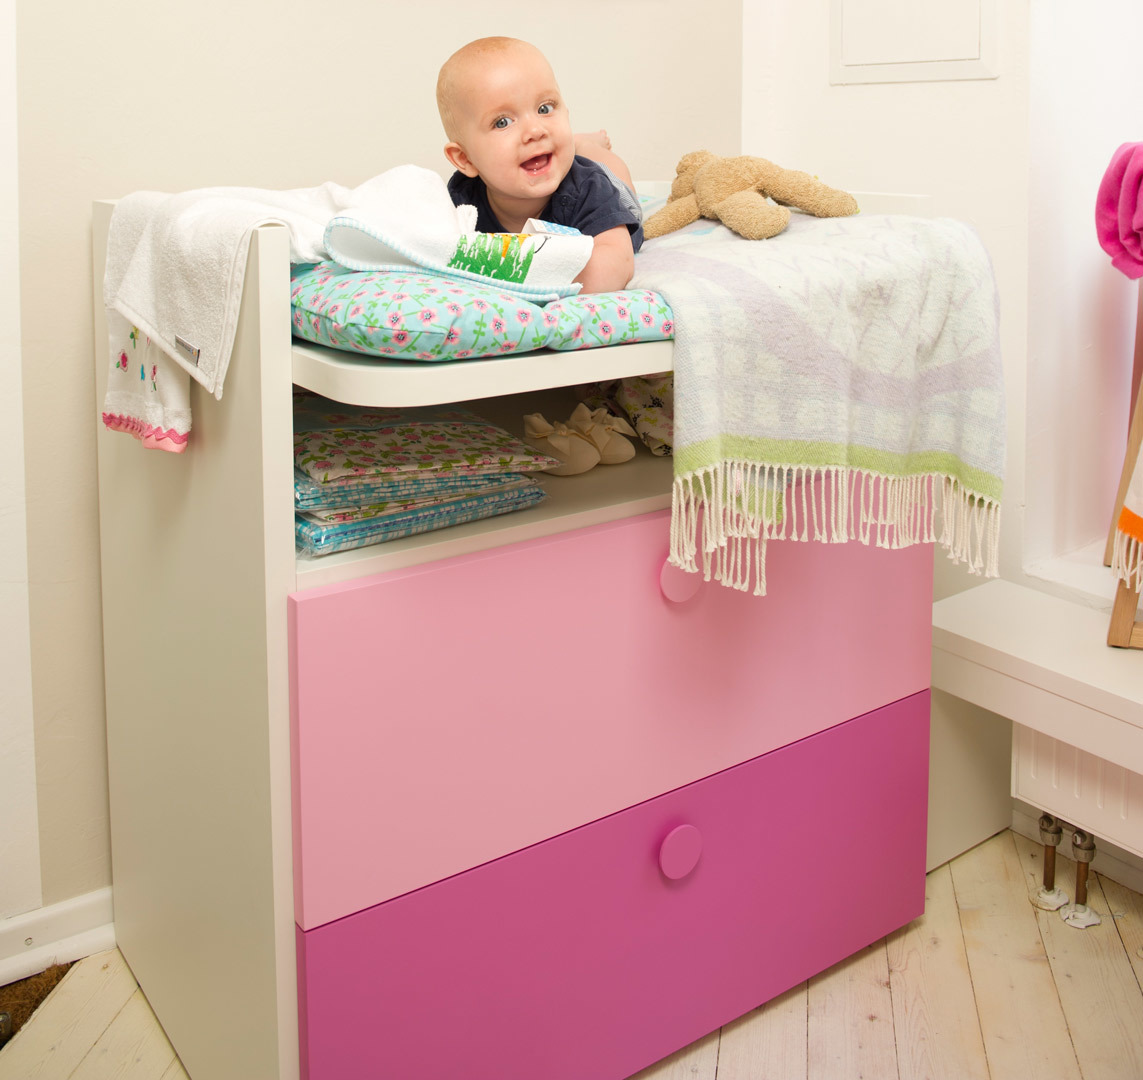 Dearkids Dearkids Be Easy - Changing Table